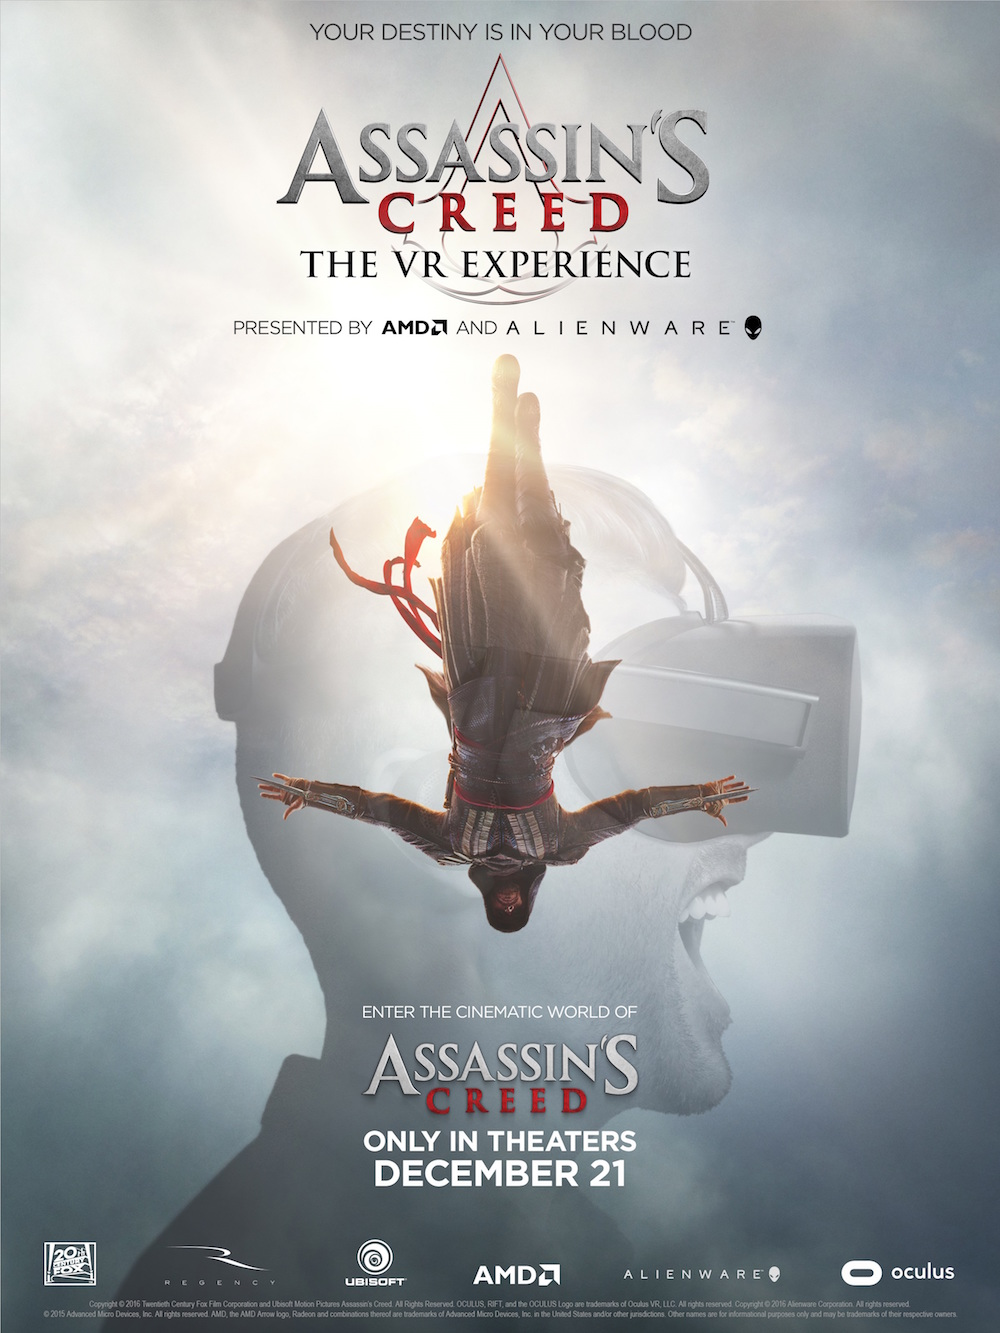 Check Out The Assassin S Creed Vr Experience On The Oculus